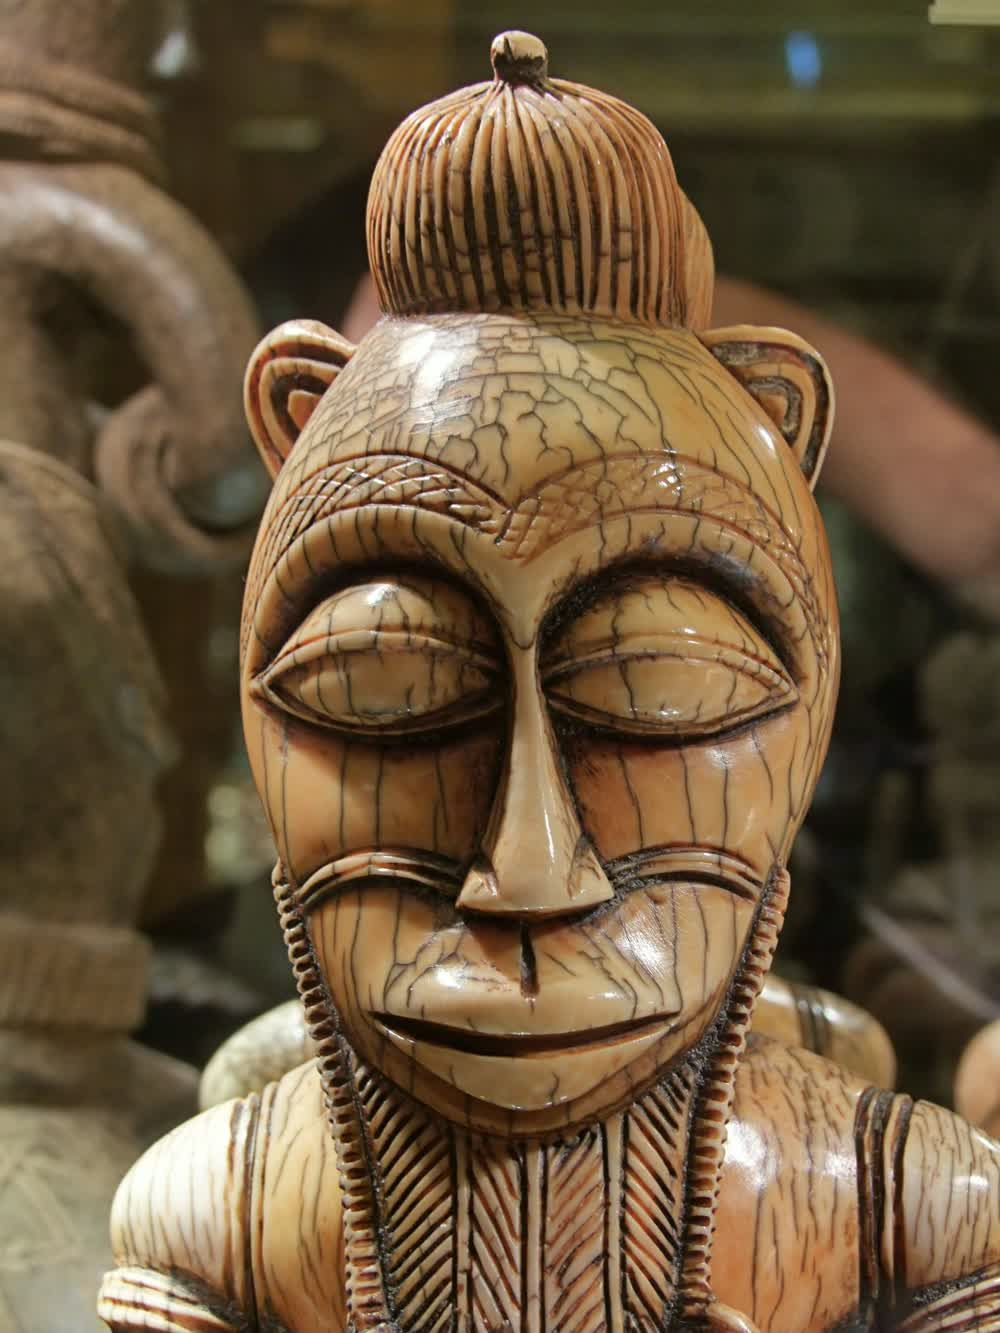 title: Tribal Head Bust Sculpture with Close Eyes